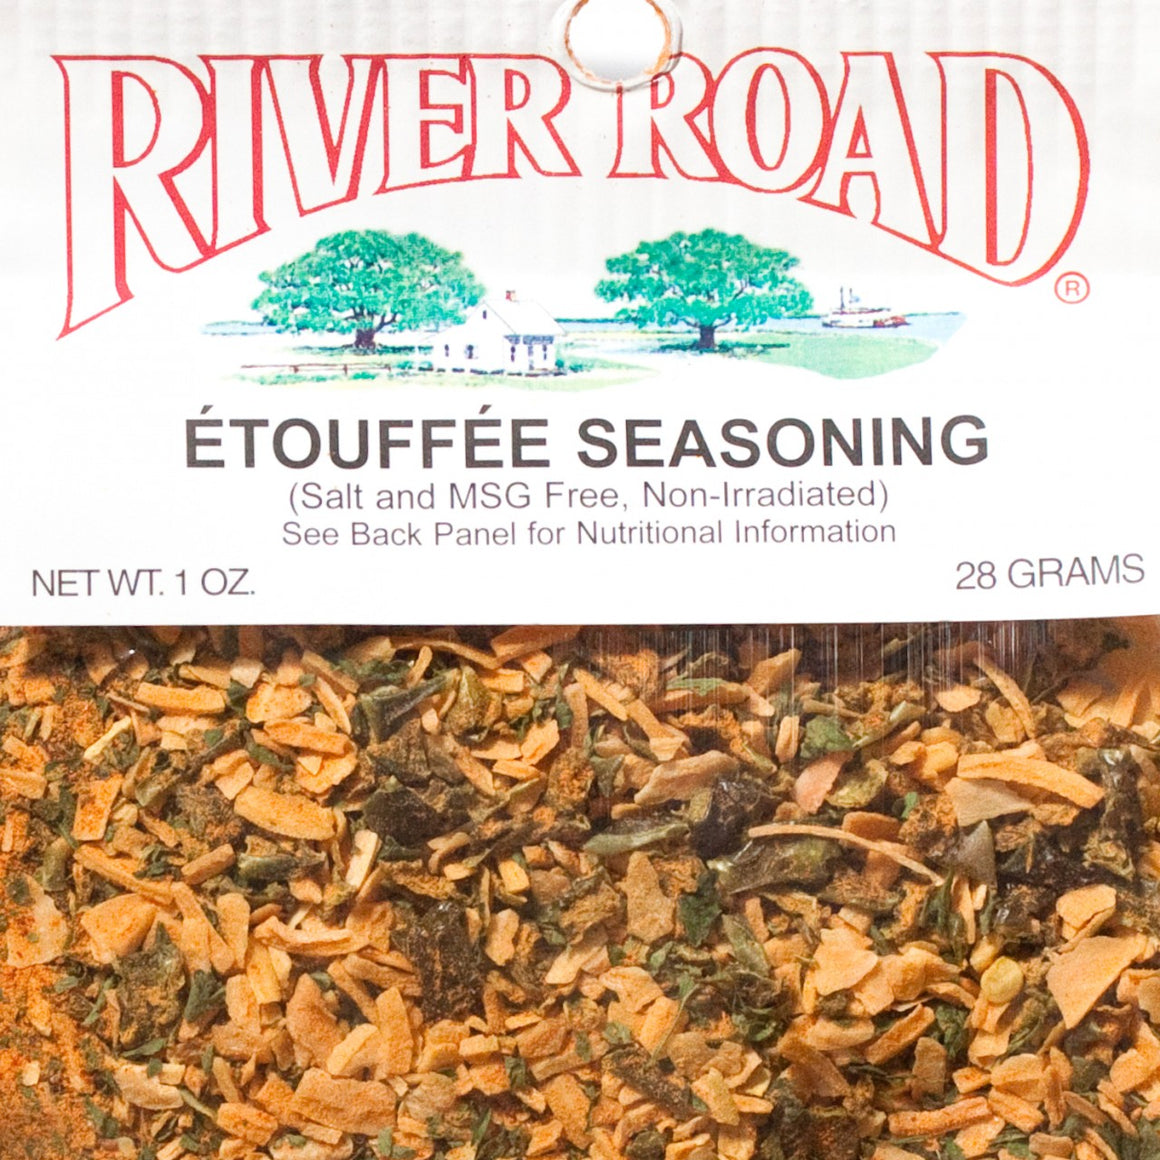 River Roads Etouffee Seasoning (1 oz)